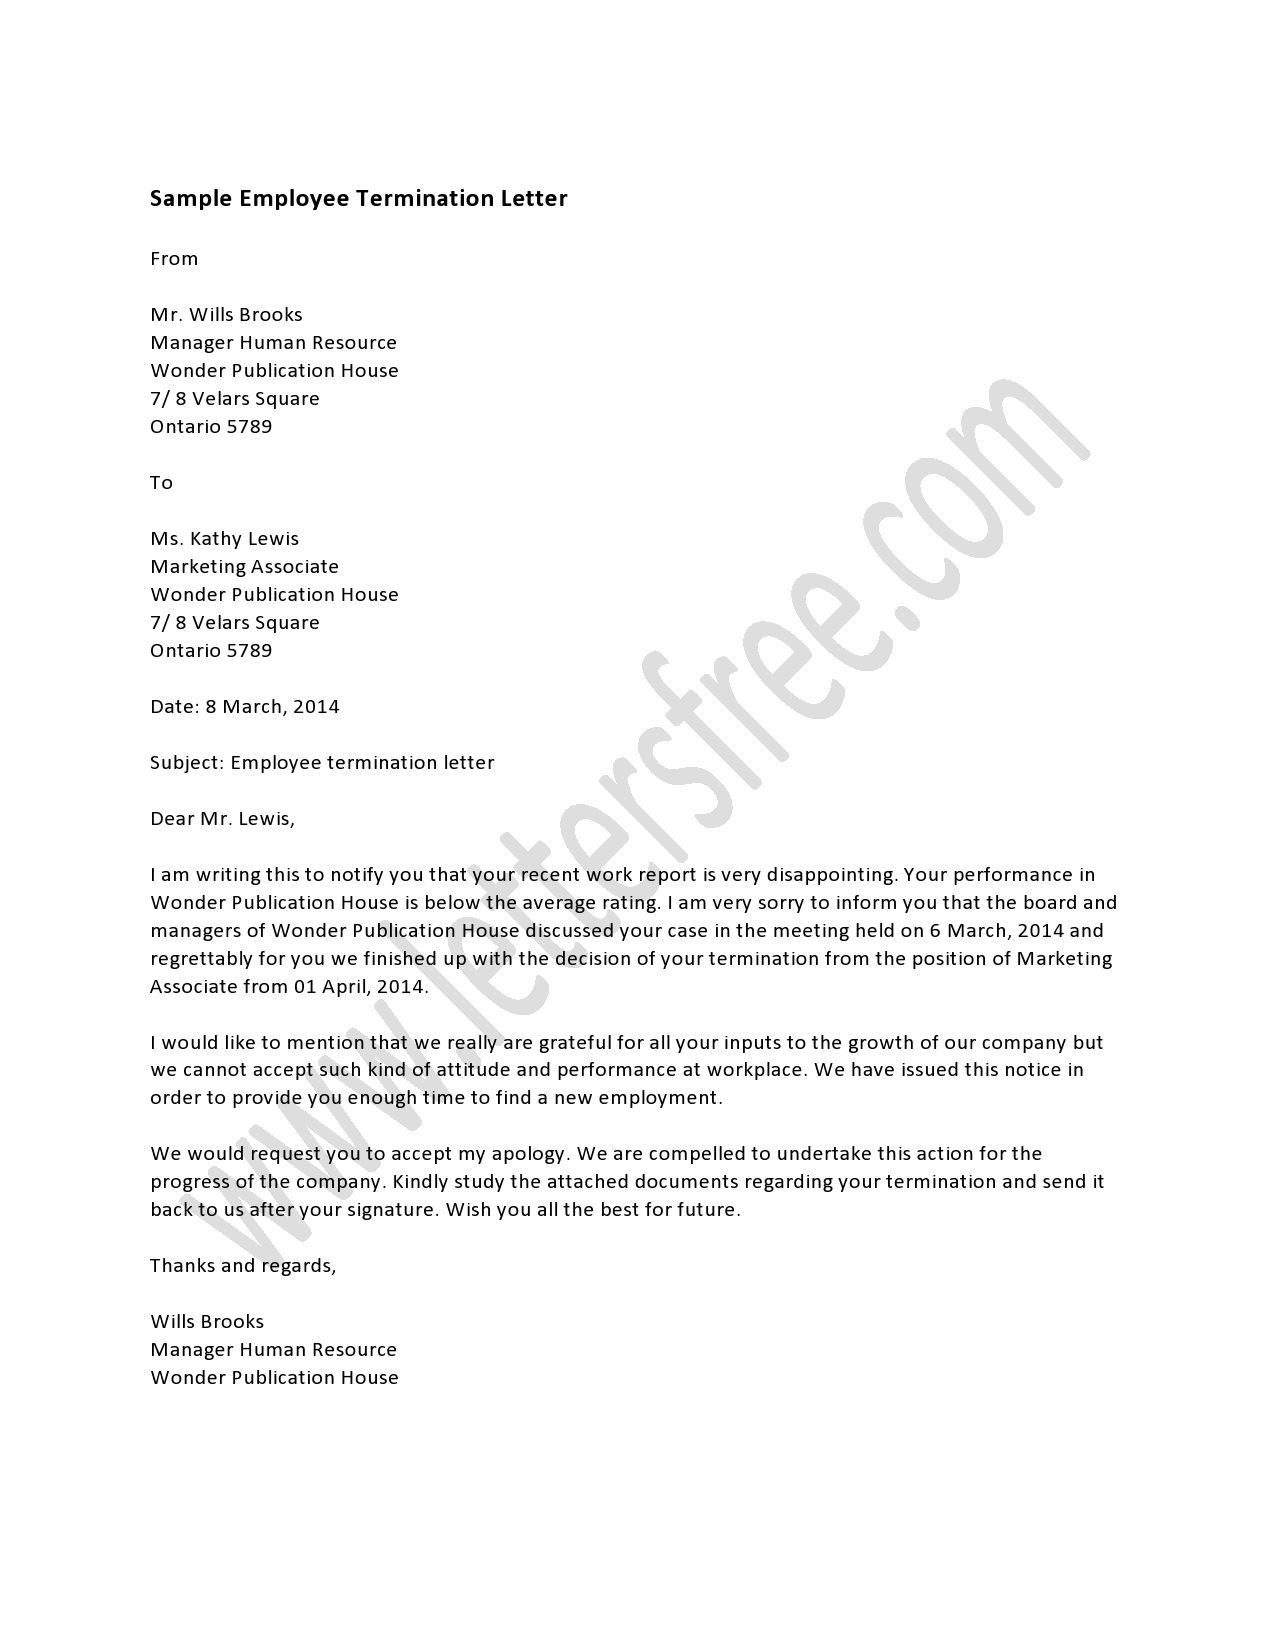 Generic Termination Letter Employee Termination Letter Is A Template Used By Companies To